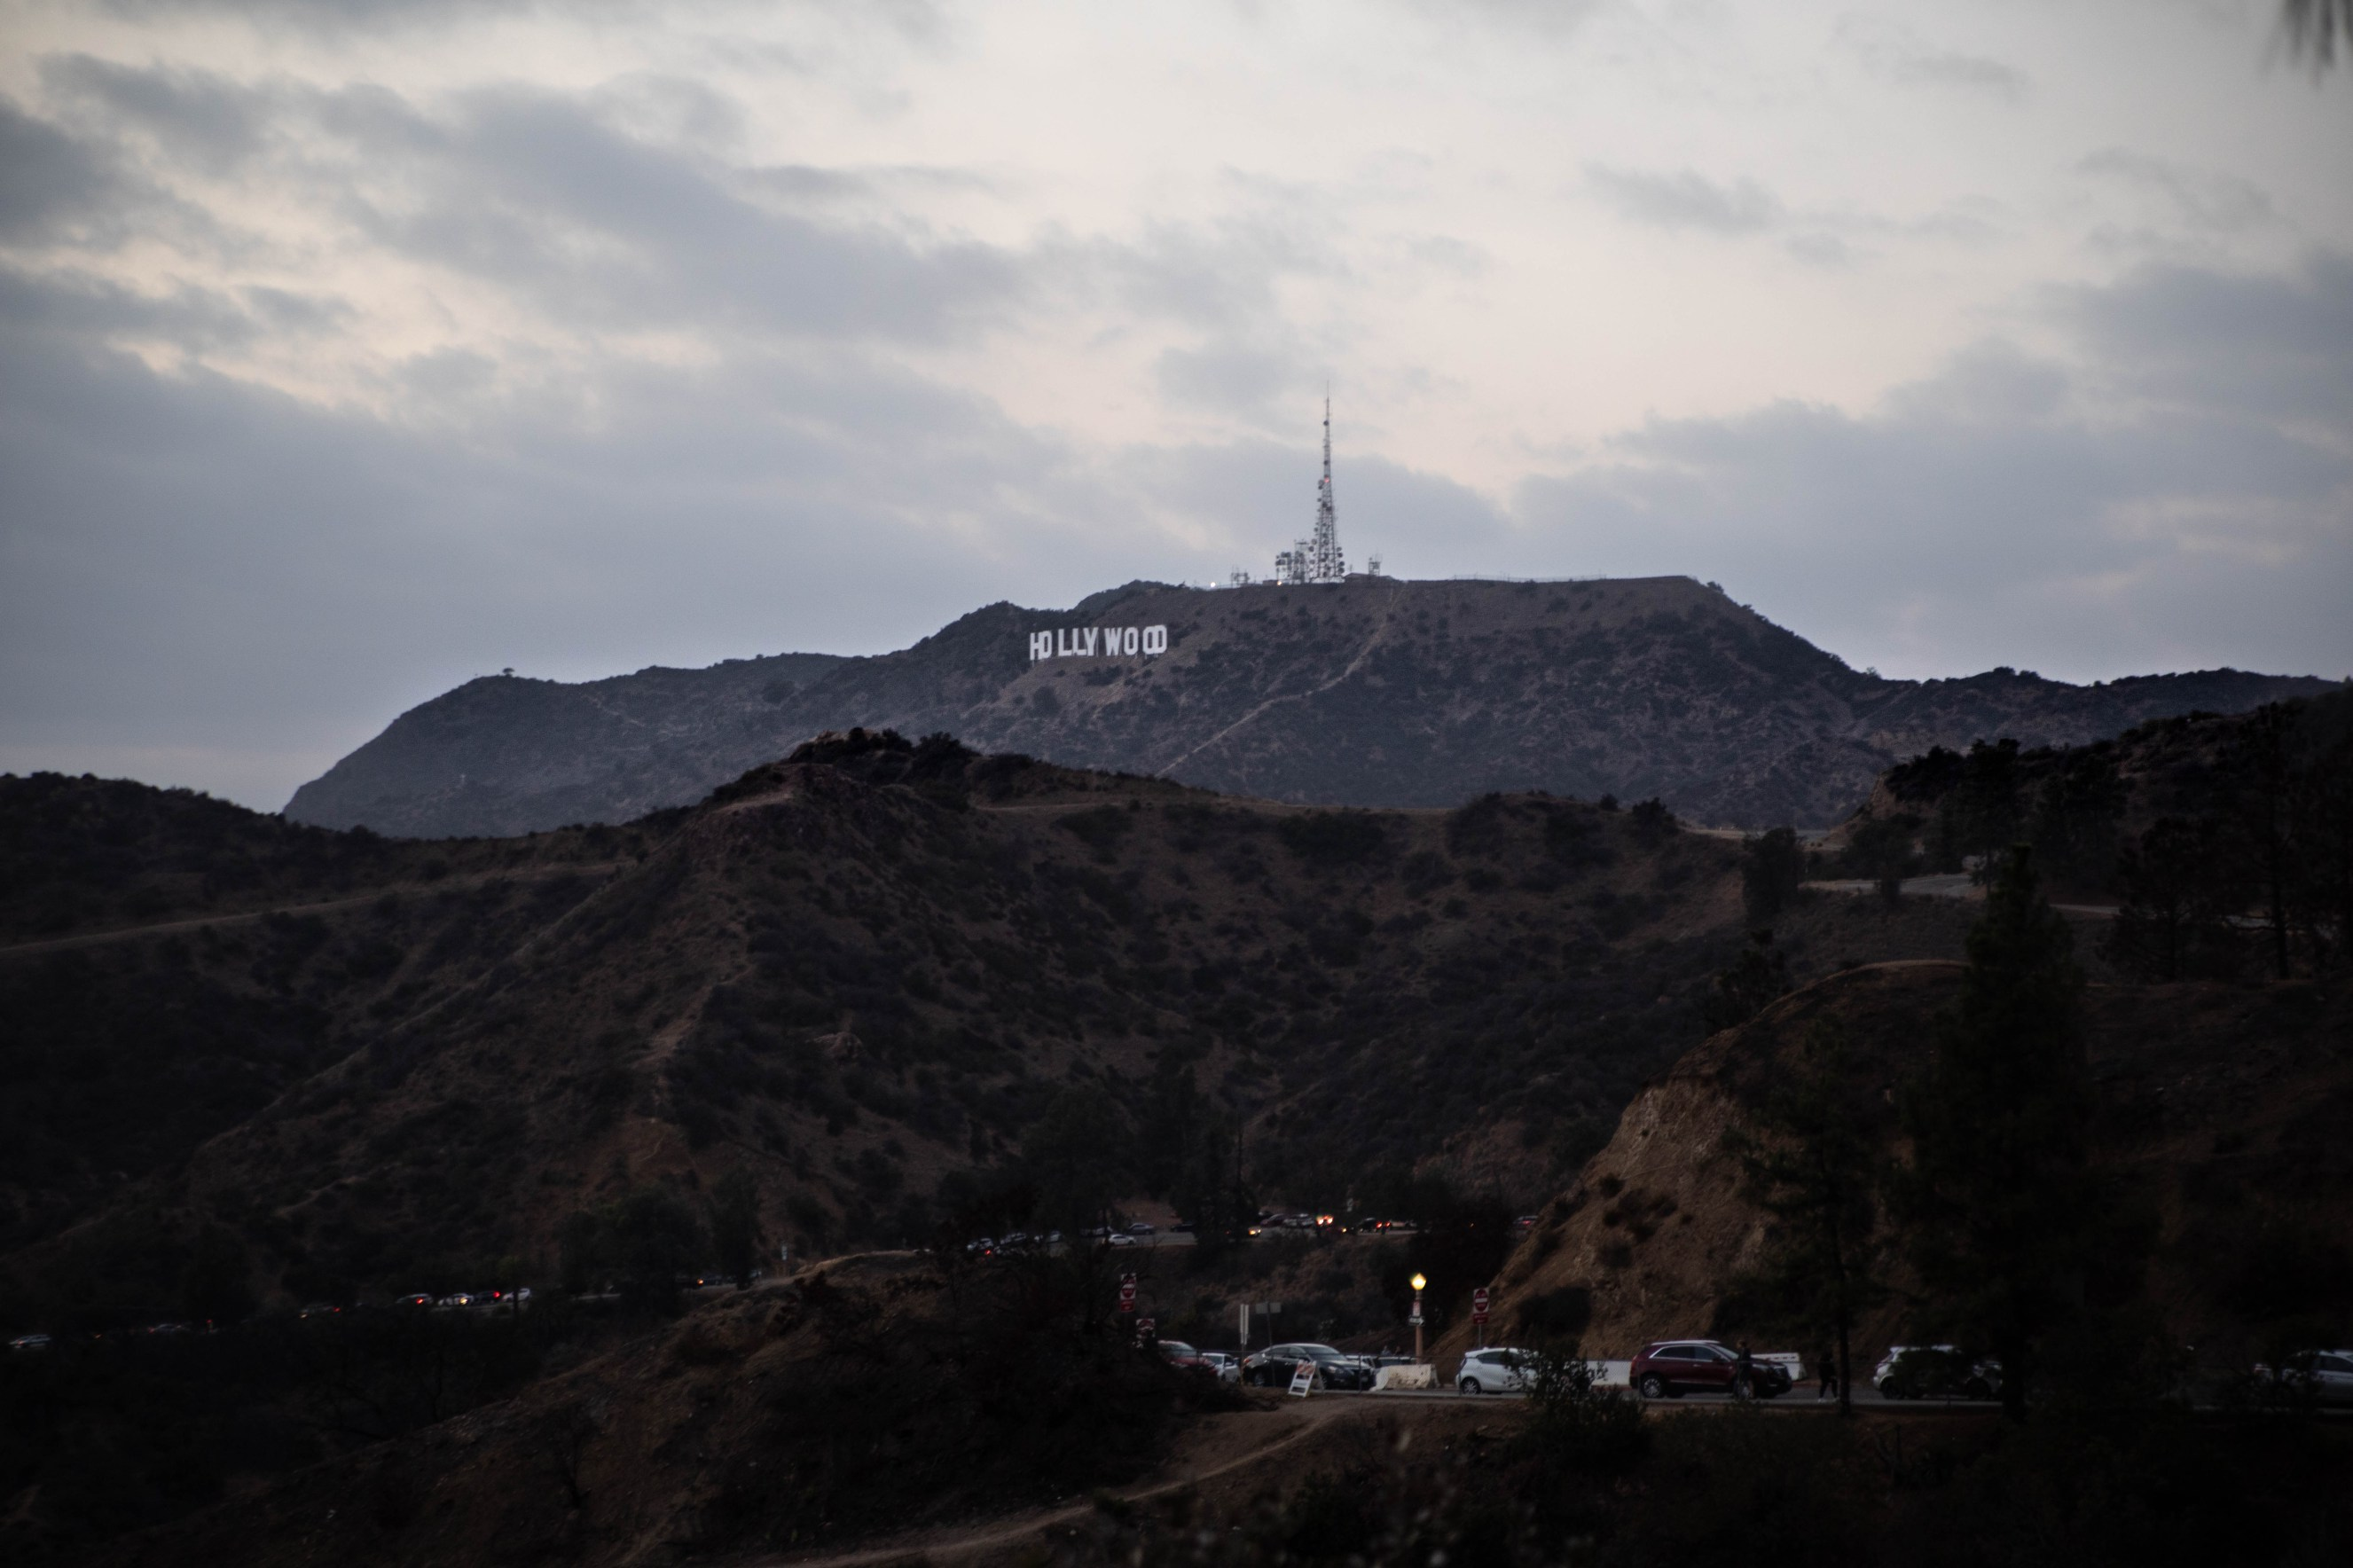 The Hollywood Sign from Griffith Observatory and Museum in Los Angeles